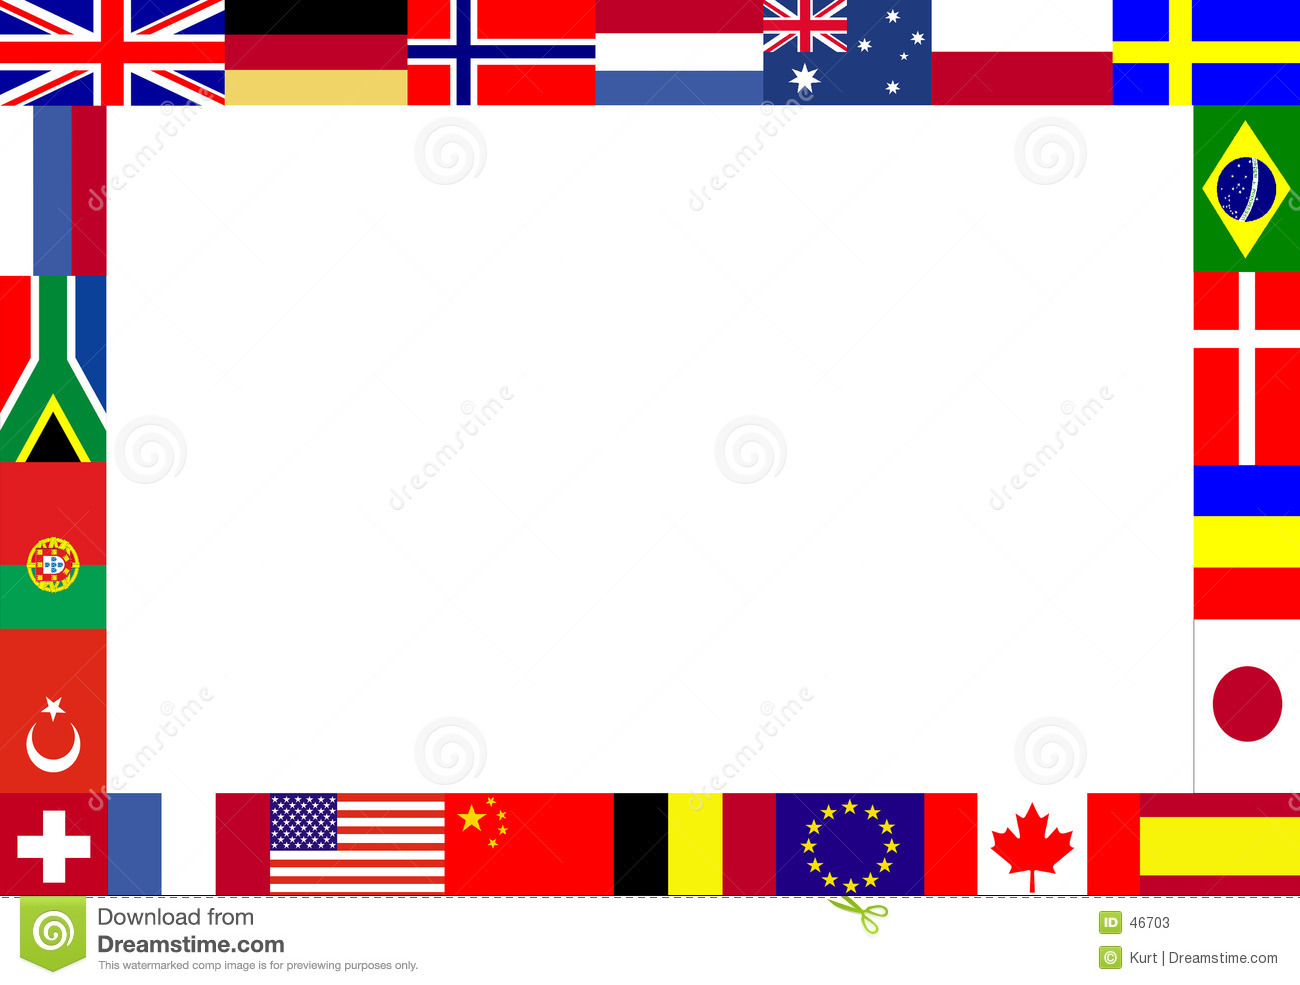 Multiple Flags Frame Stock Photos Image -Multiple Flags Frame Stock Photos Image 46703-3